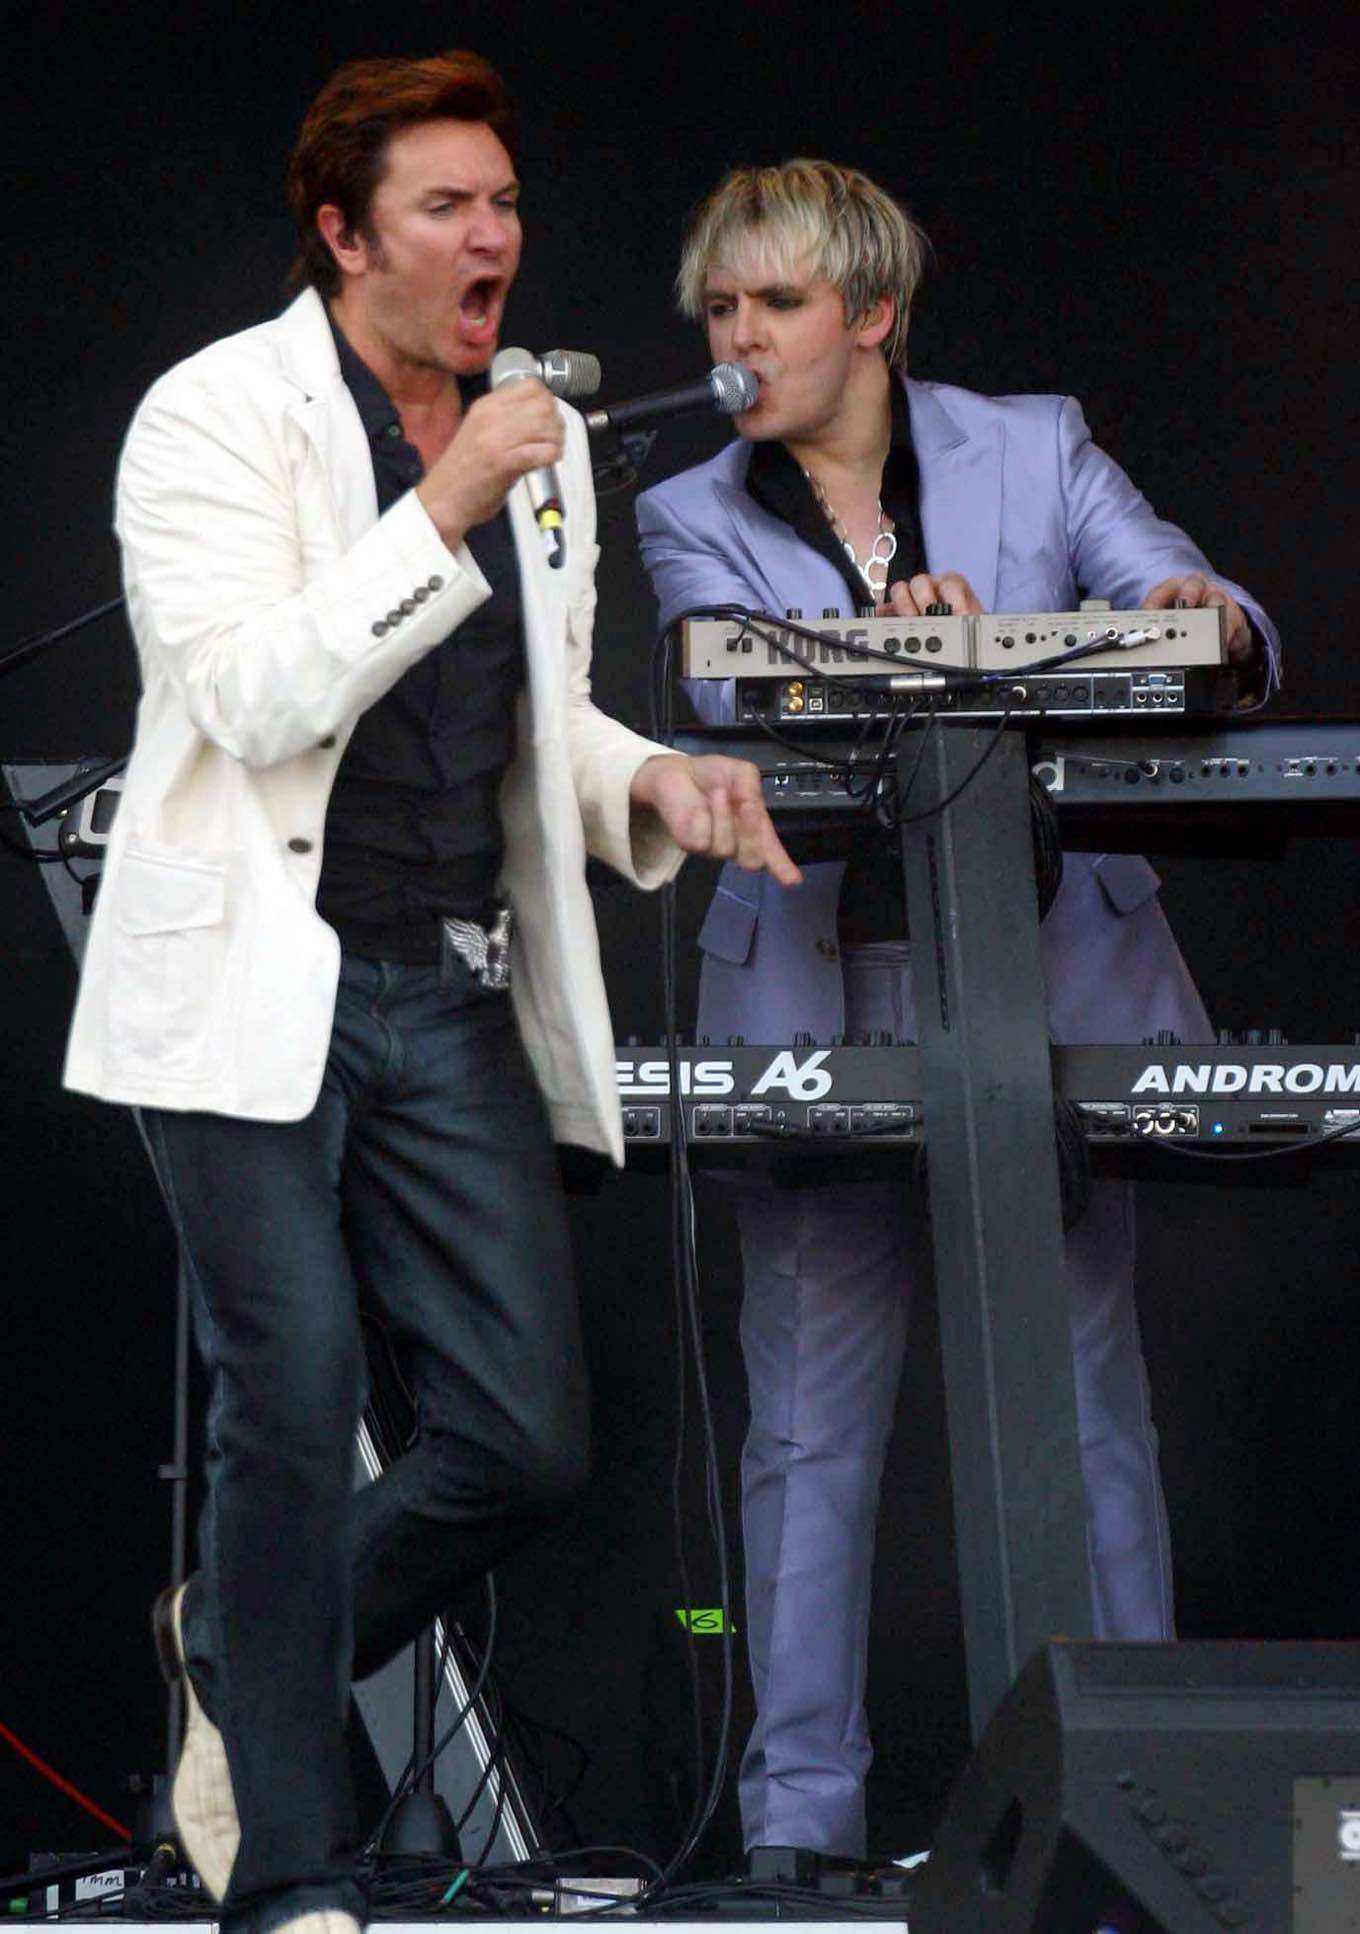 Simon Le Bon, left, and Nick Rhodes of the Duran Duran perform on the stage of Live 8 concert in Rome's Circus Maximus, Saturday, July 2, 2005. Thousands gathered in Rome's ancient Circus Maximus Saturday to watch Faith Hill, Duran Duran and a long list of Italian stars, in one of 10 concerts across the globe to help raise awareness about African poverty.(AP Photo/Alessandra Tarantino)